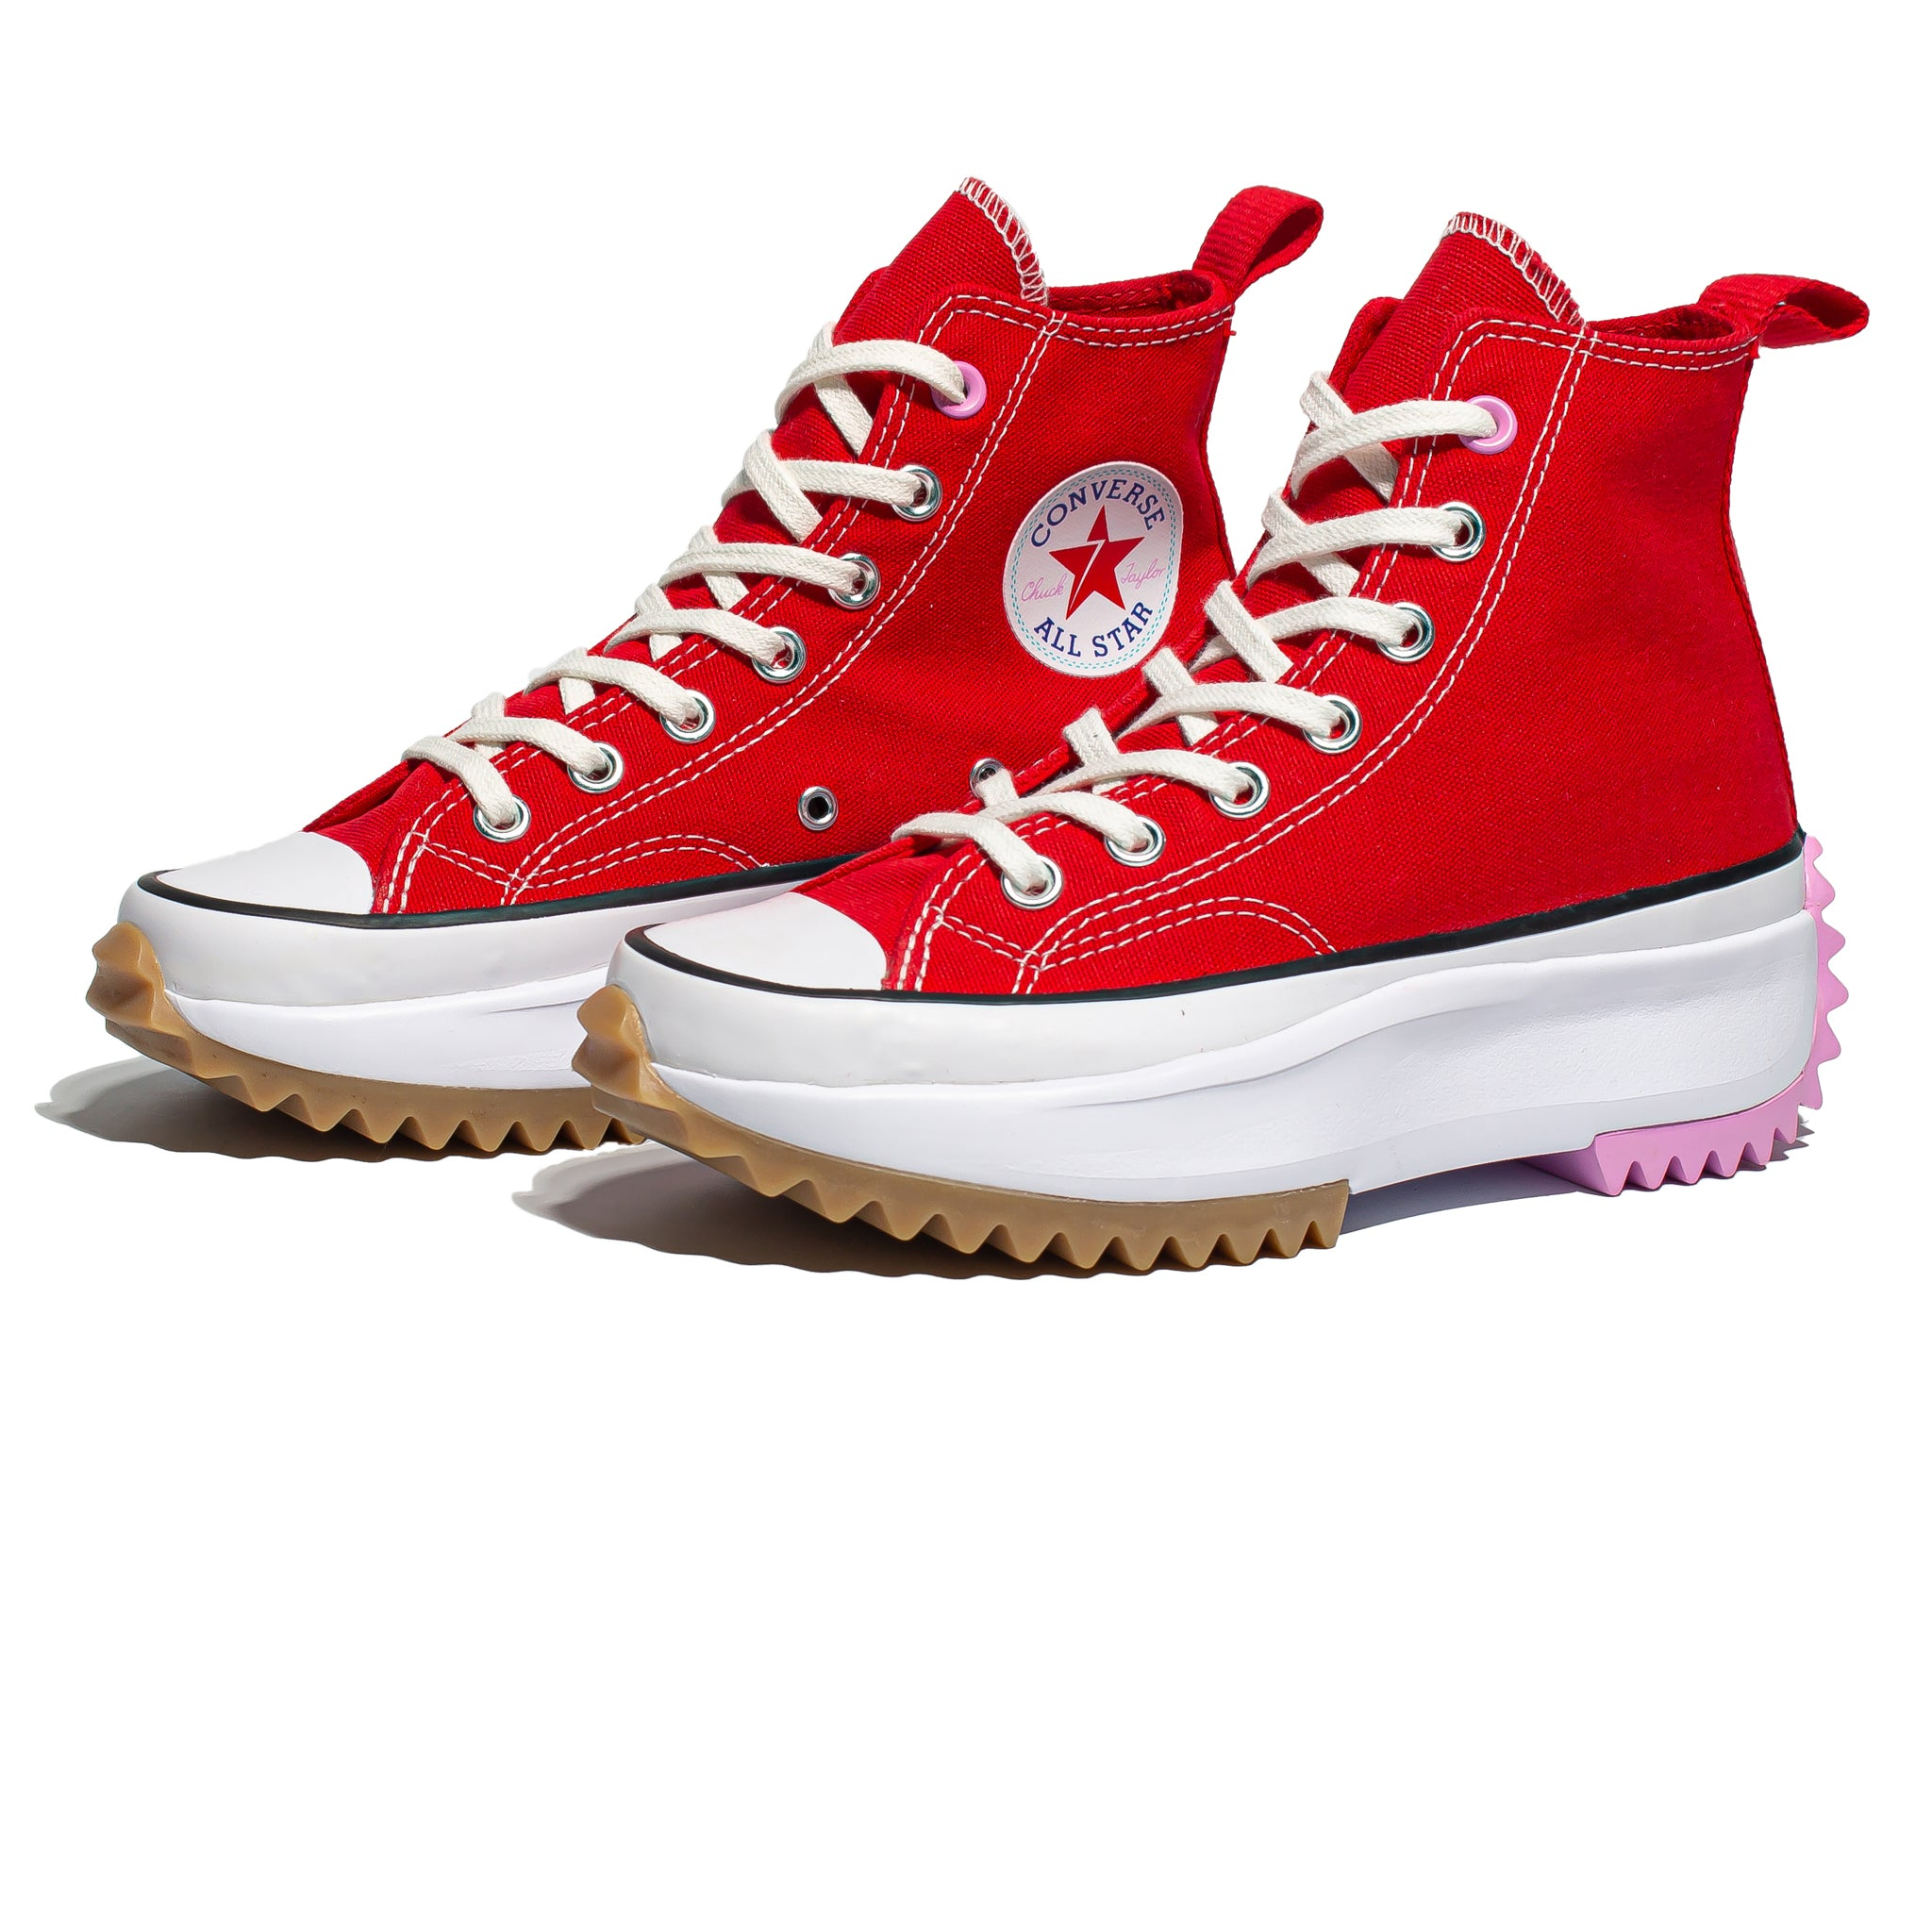 Converse Run Star Hike University Red